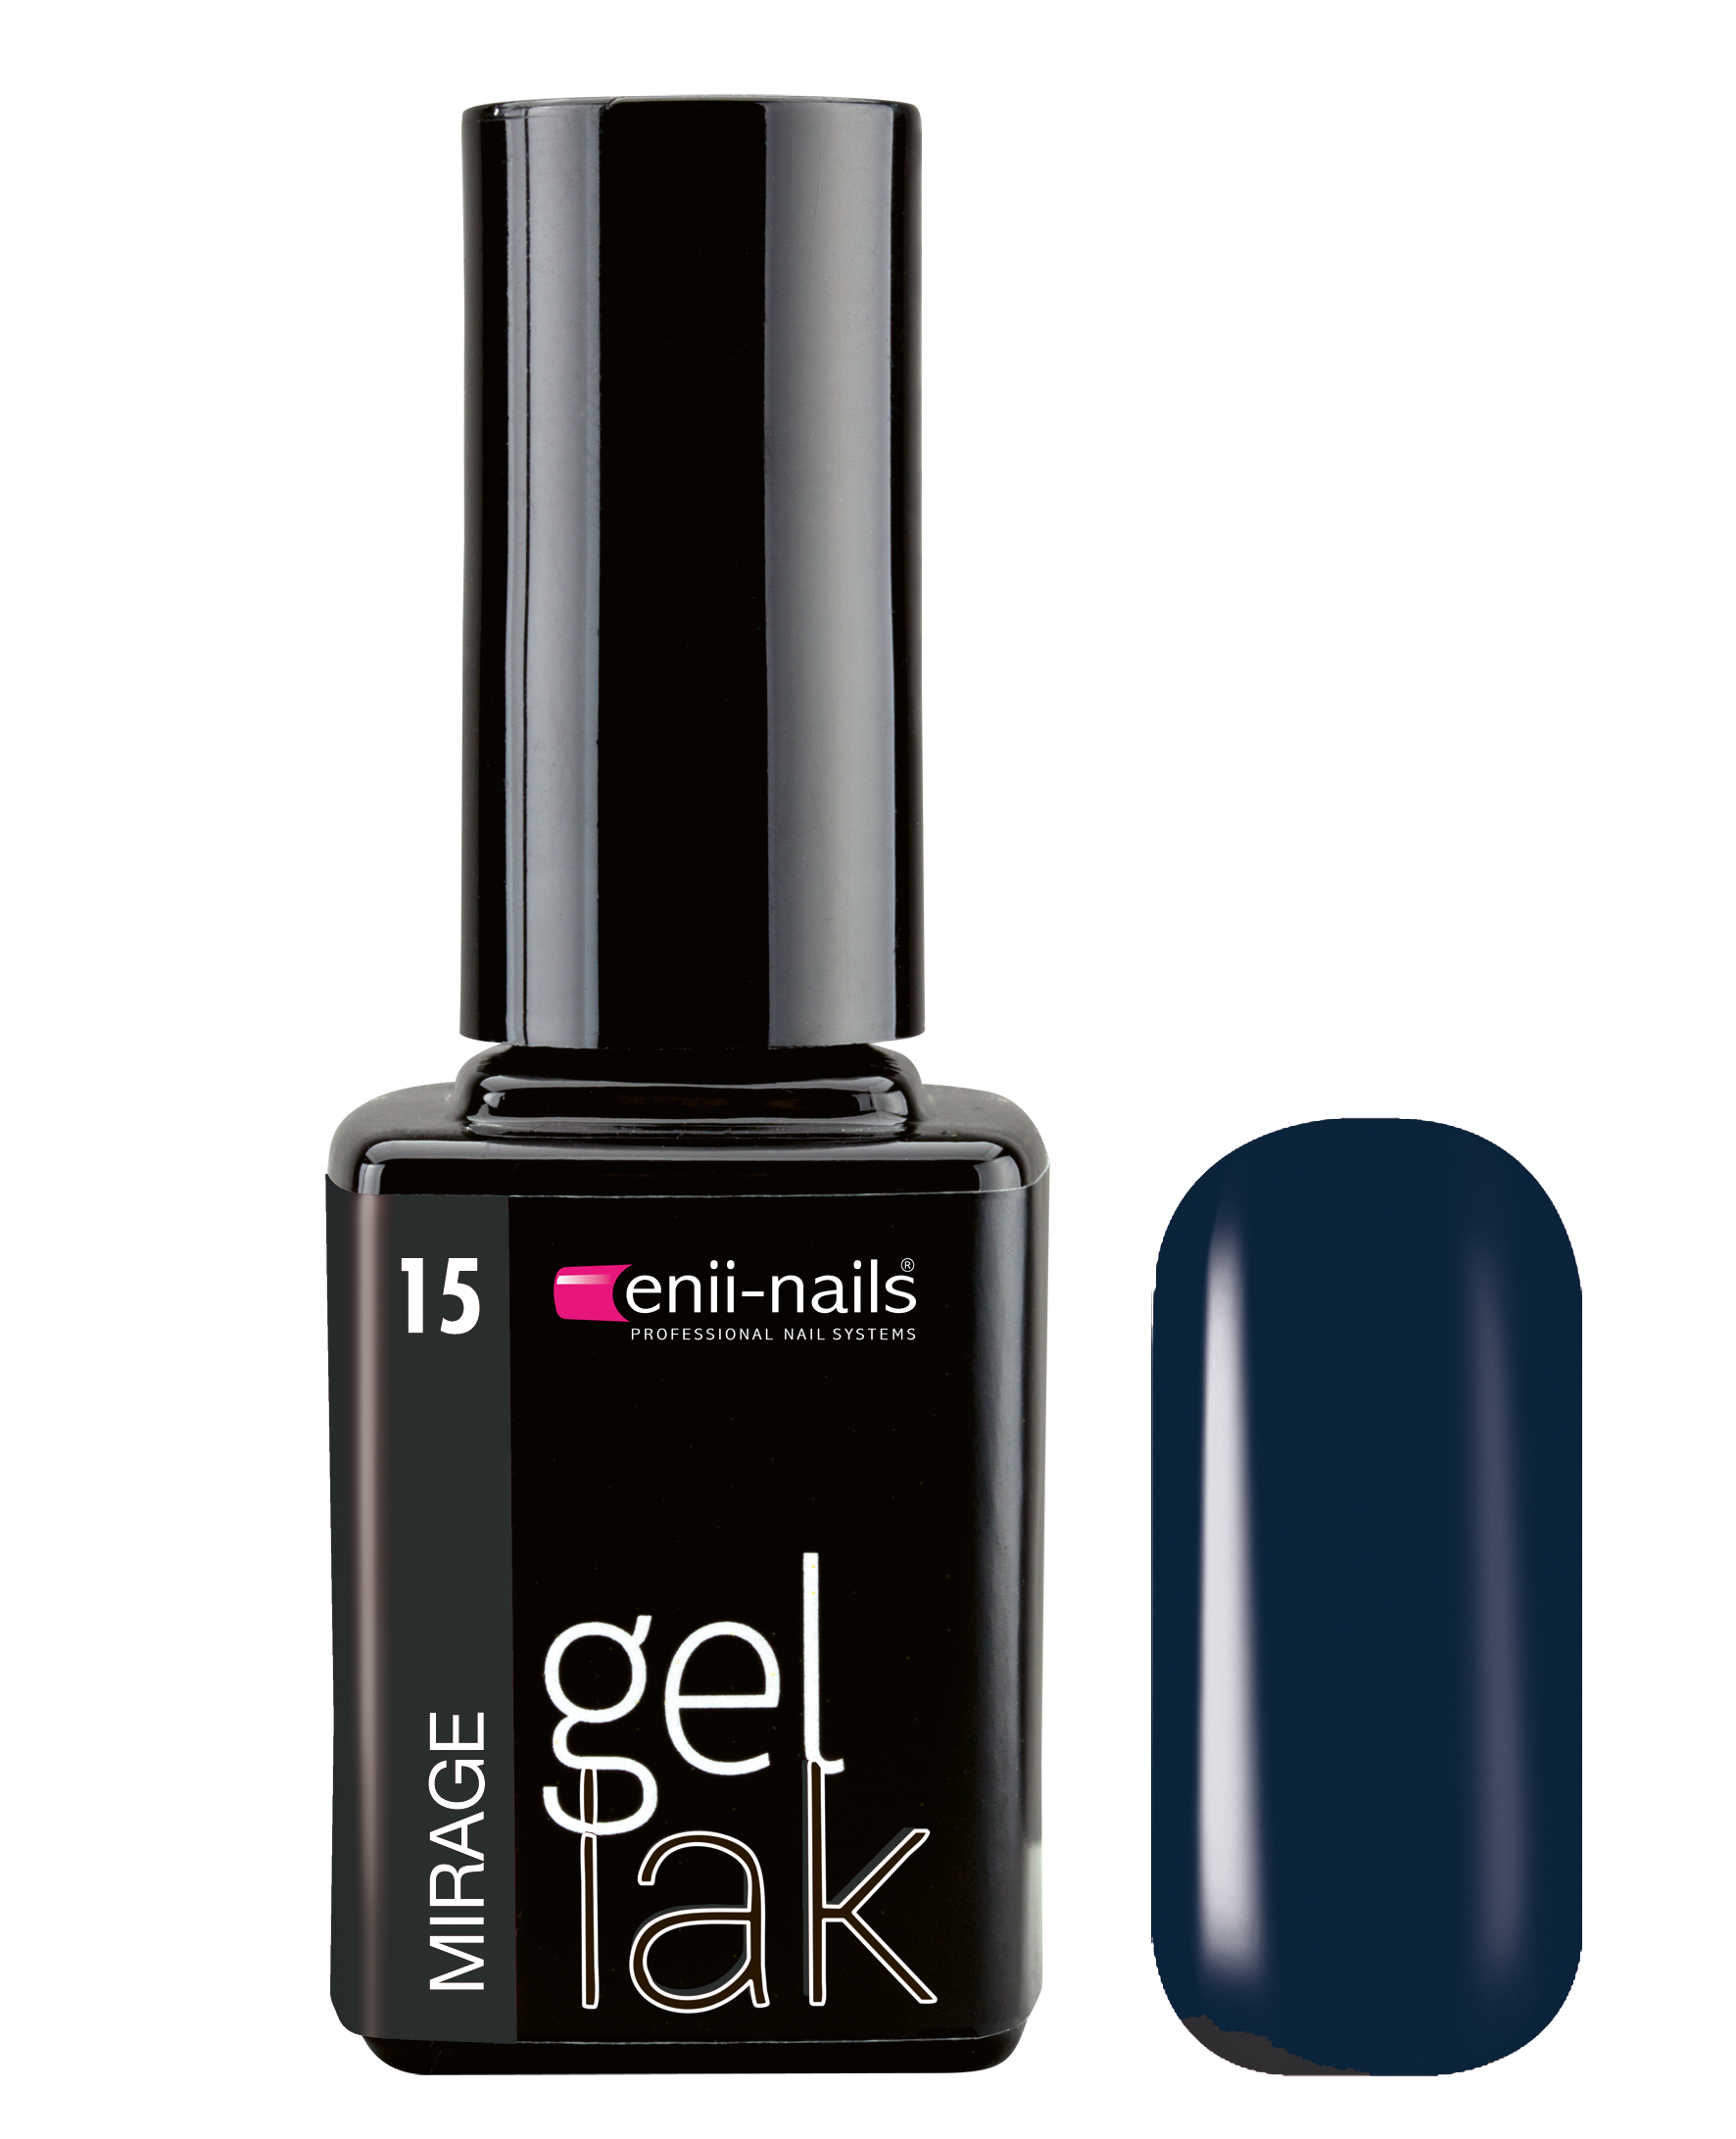 ENII-NAILS Gel lak 11 ml - mirage